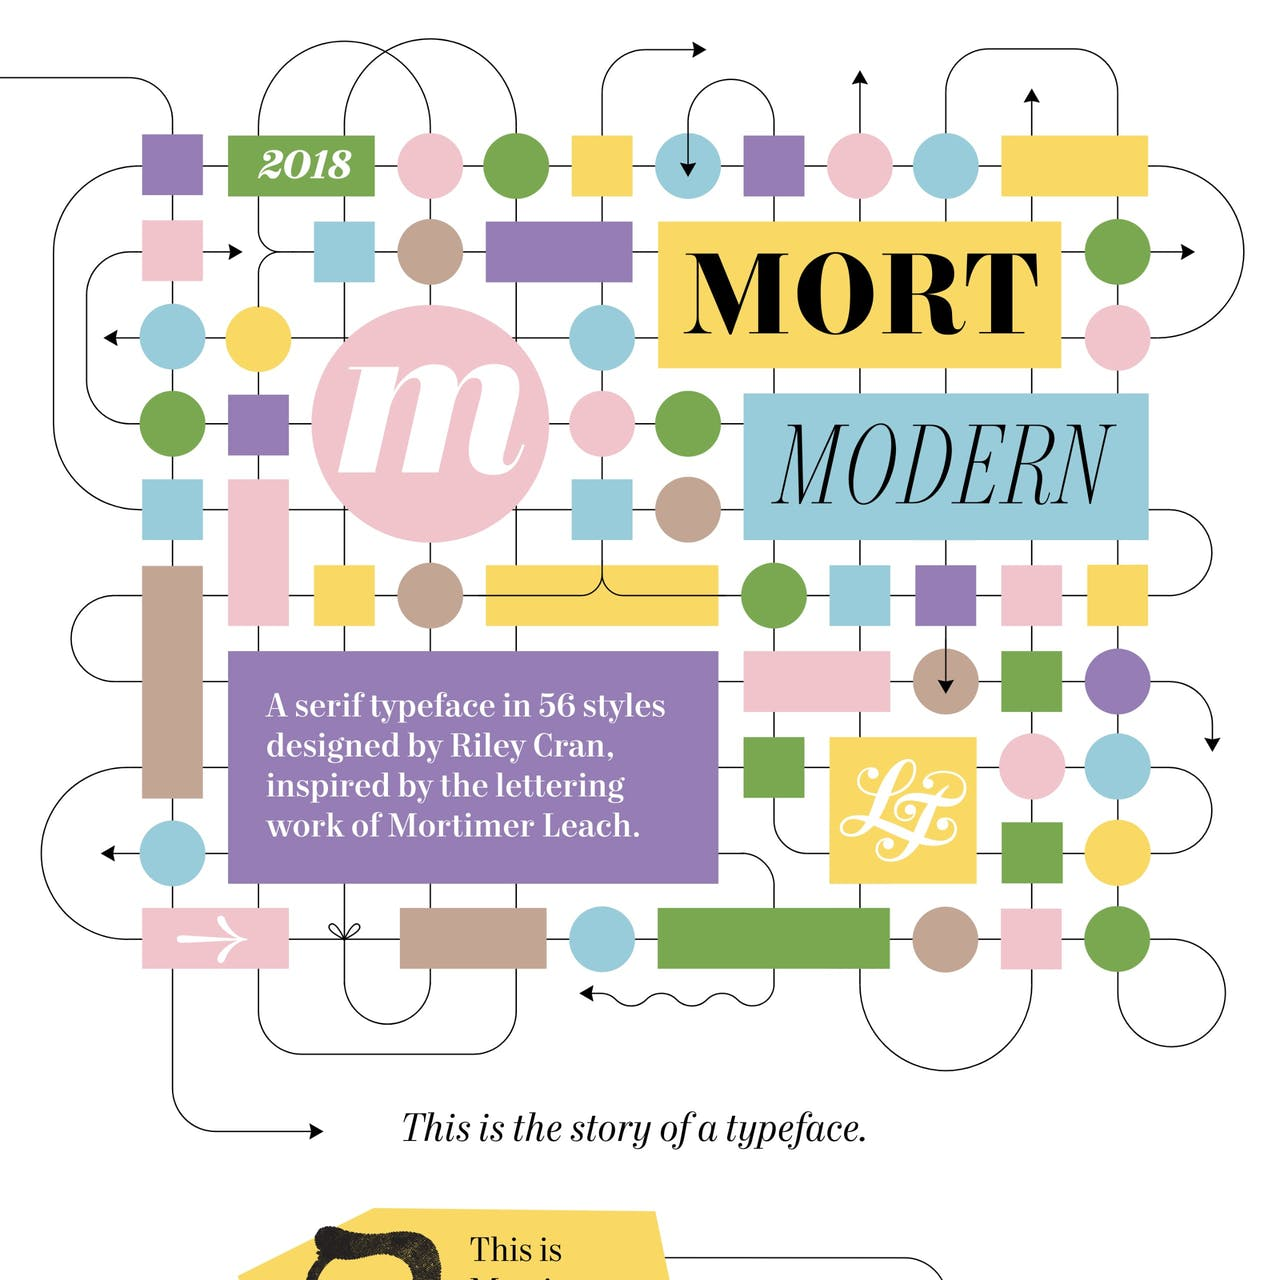 Mort Modern Website Screenshot